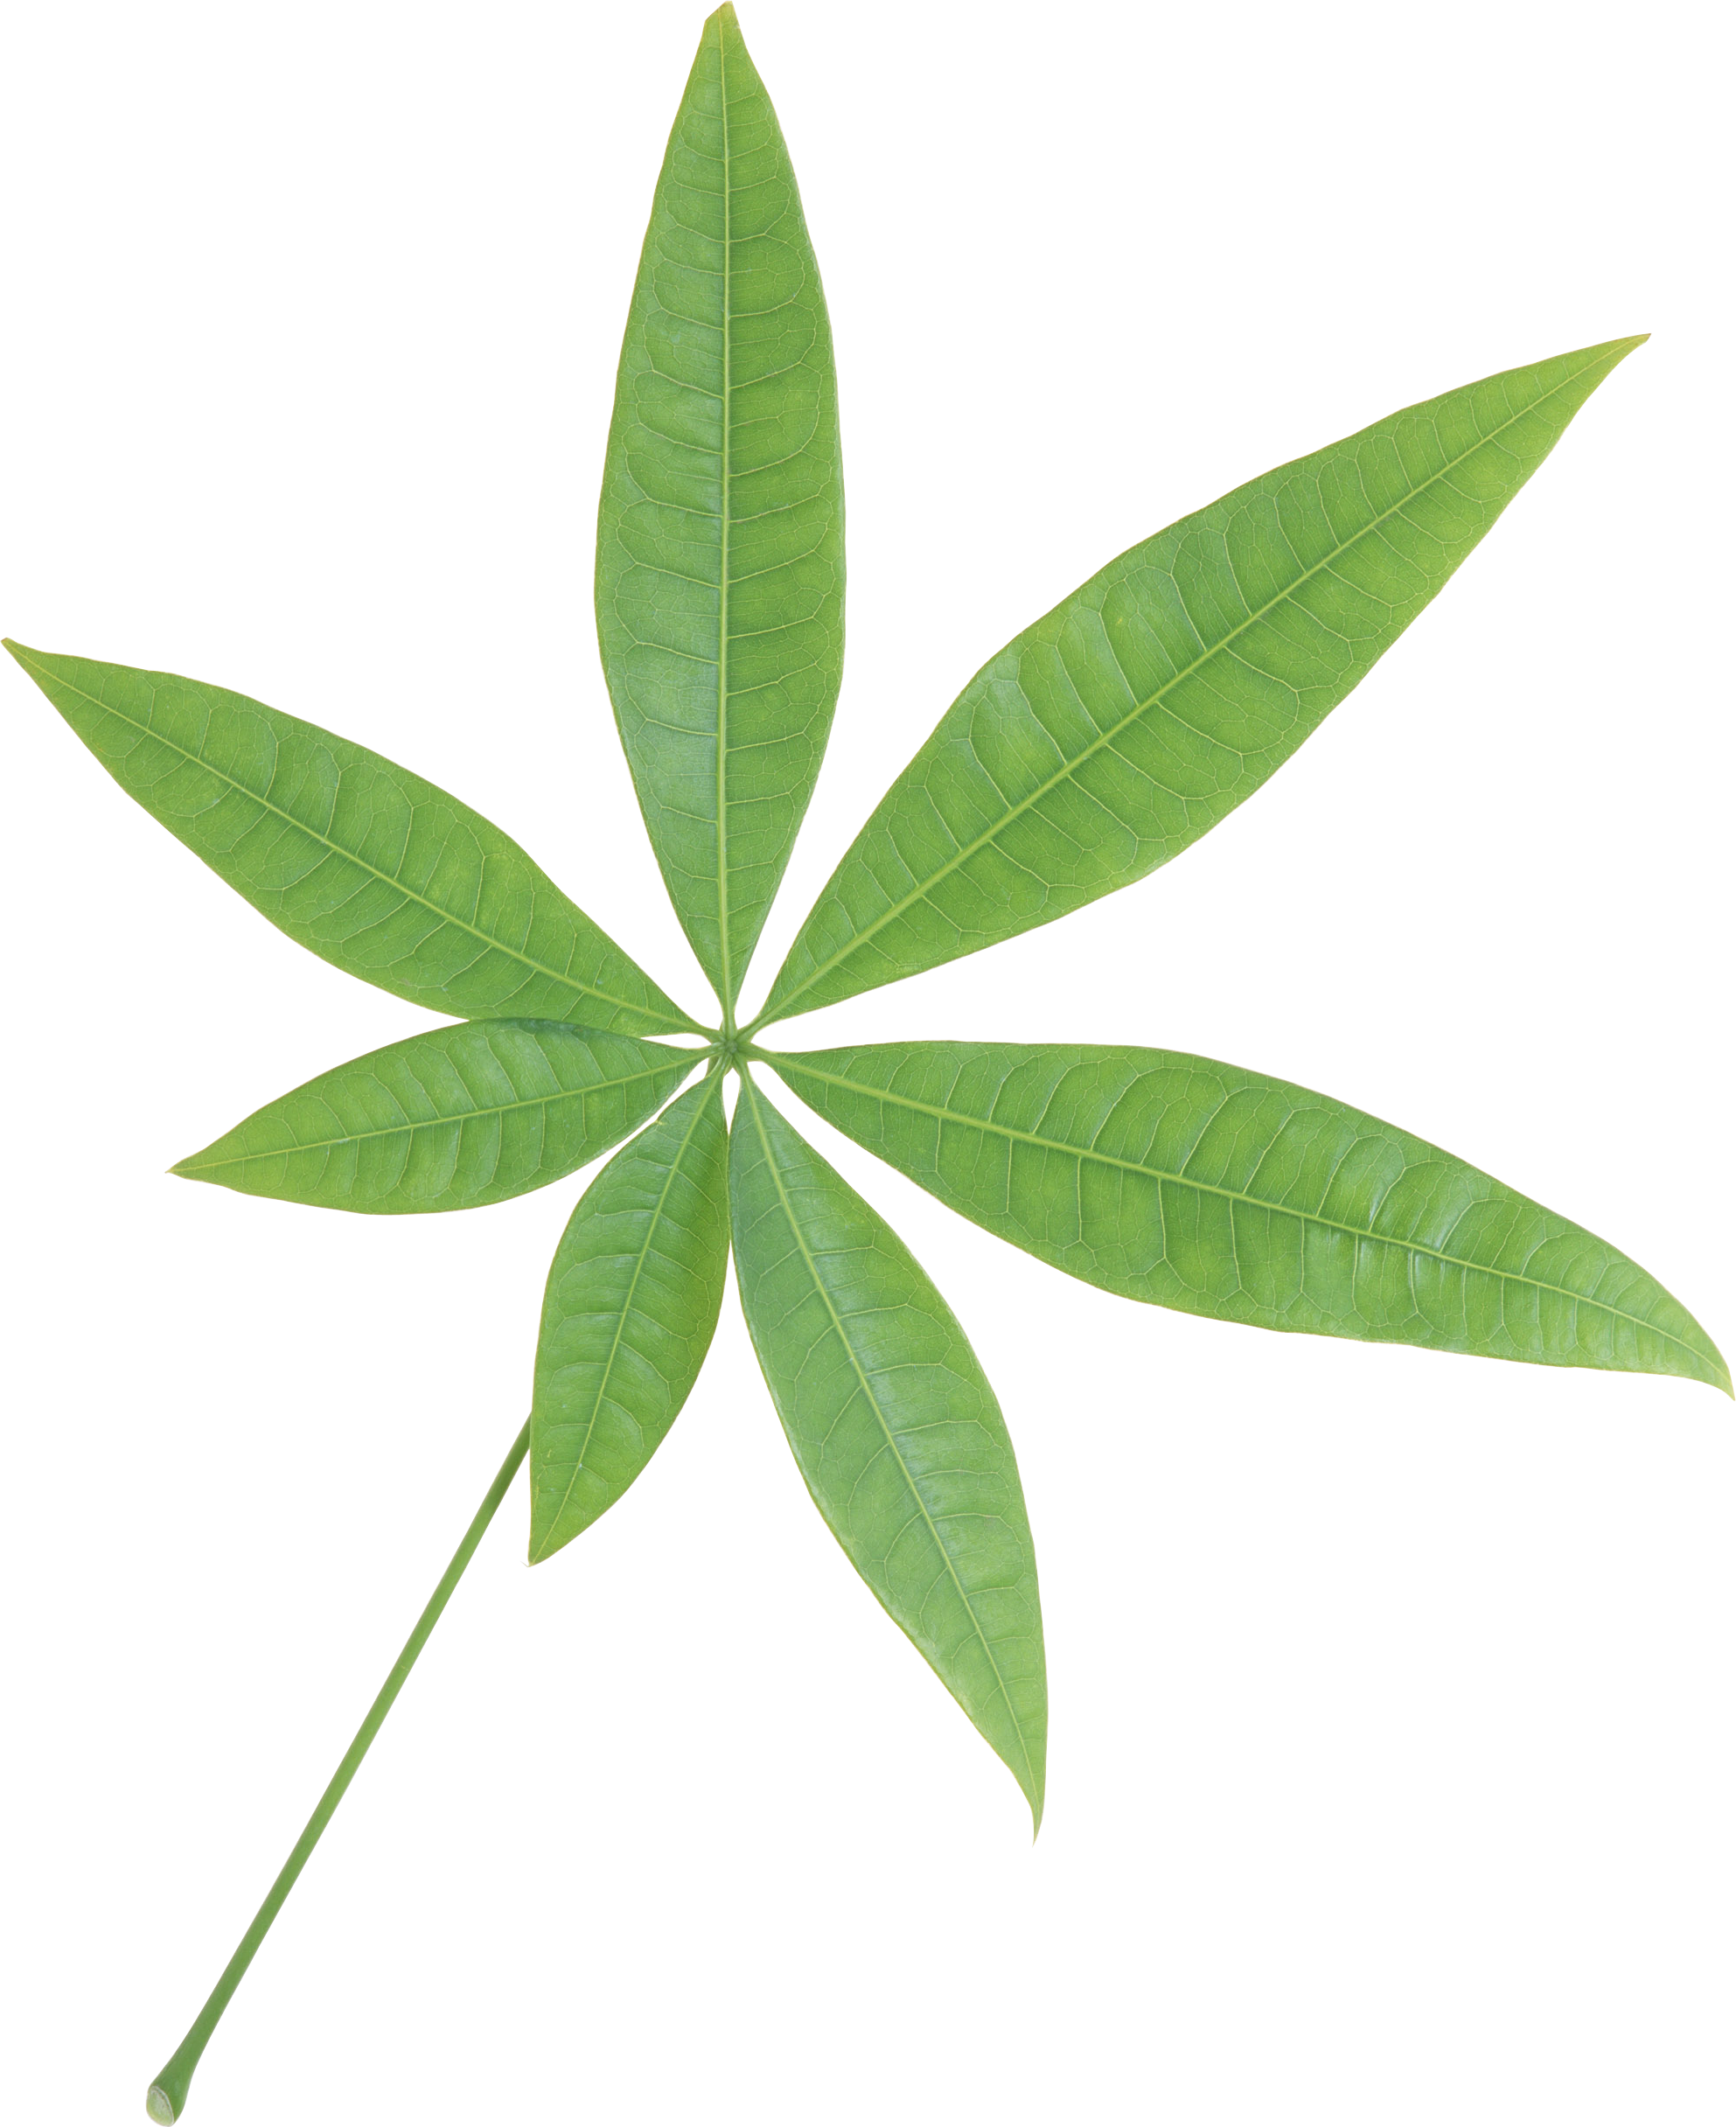 Green leaves PNG Image.